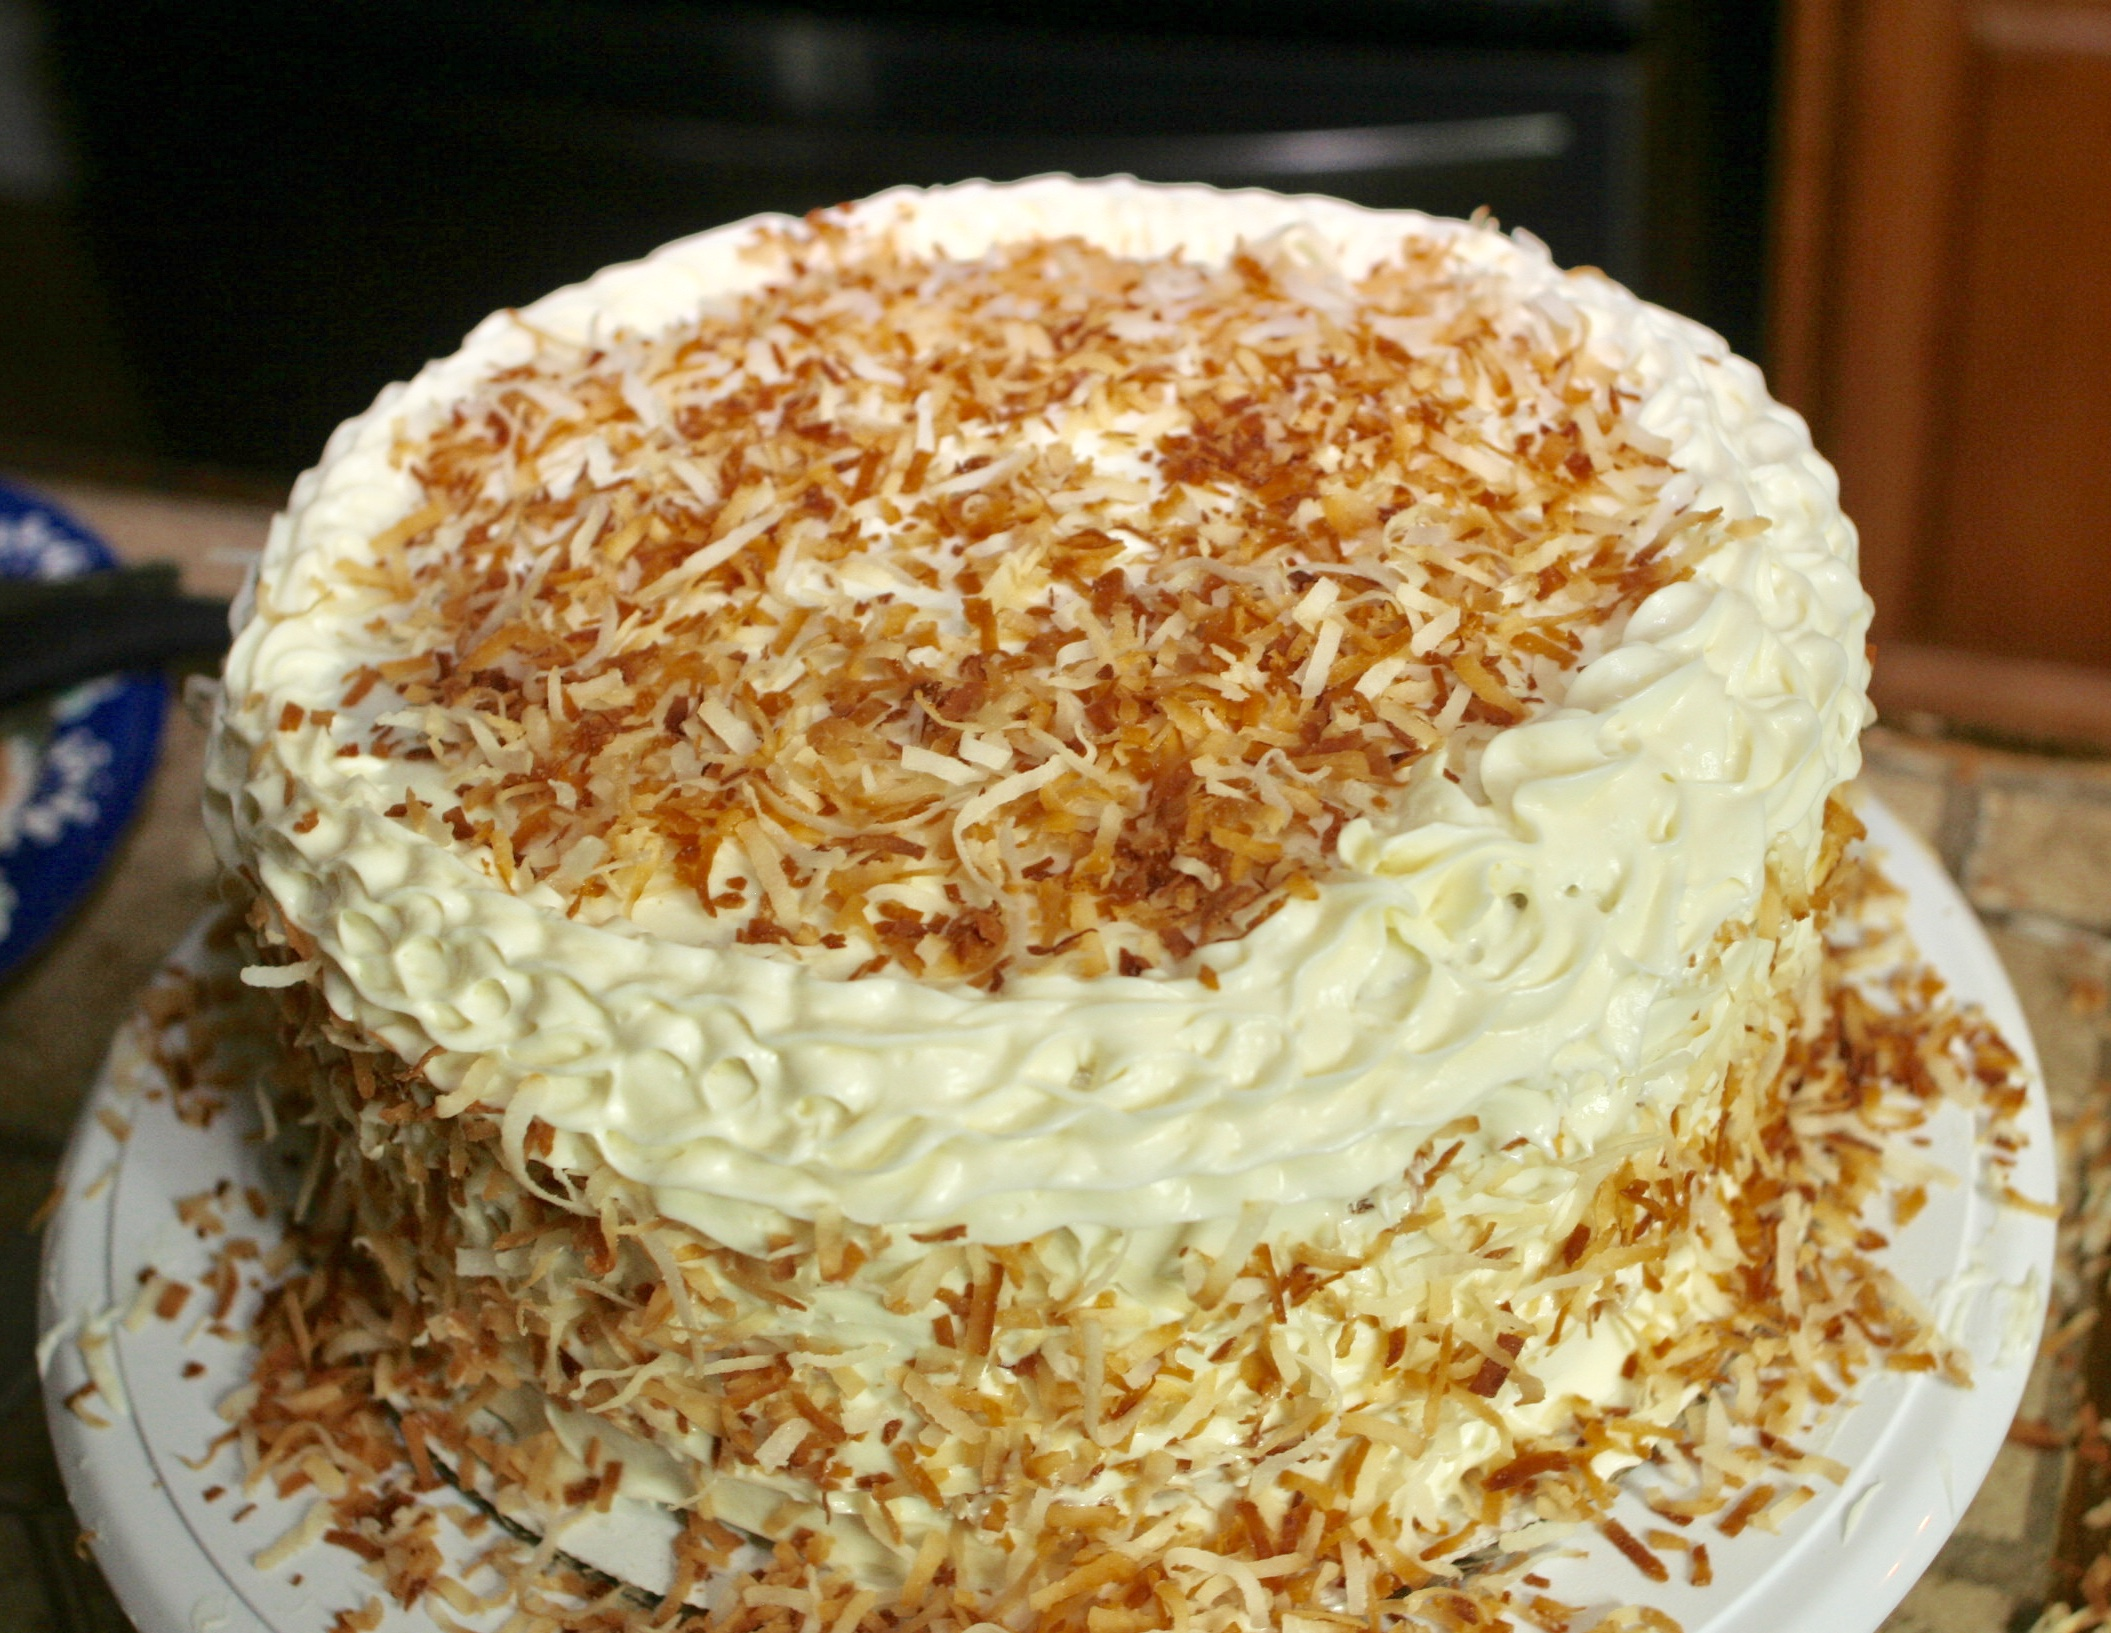 Toasted Coconut 3 layer cake with Cream Cheese Frosting